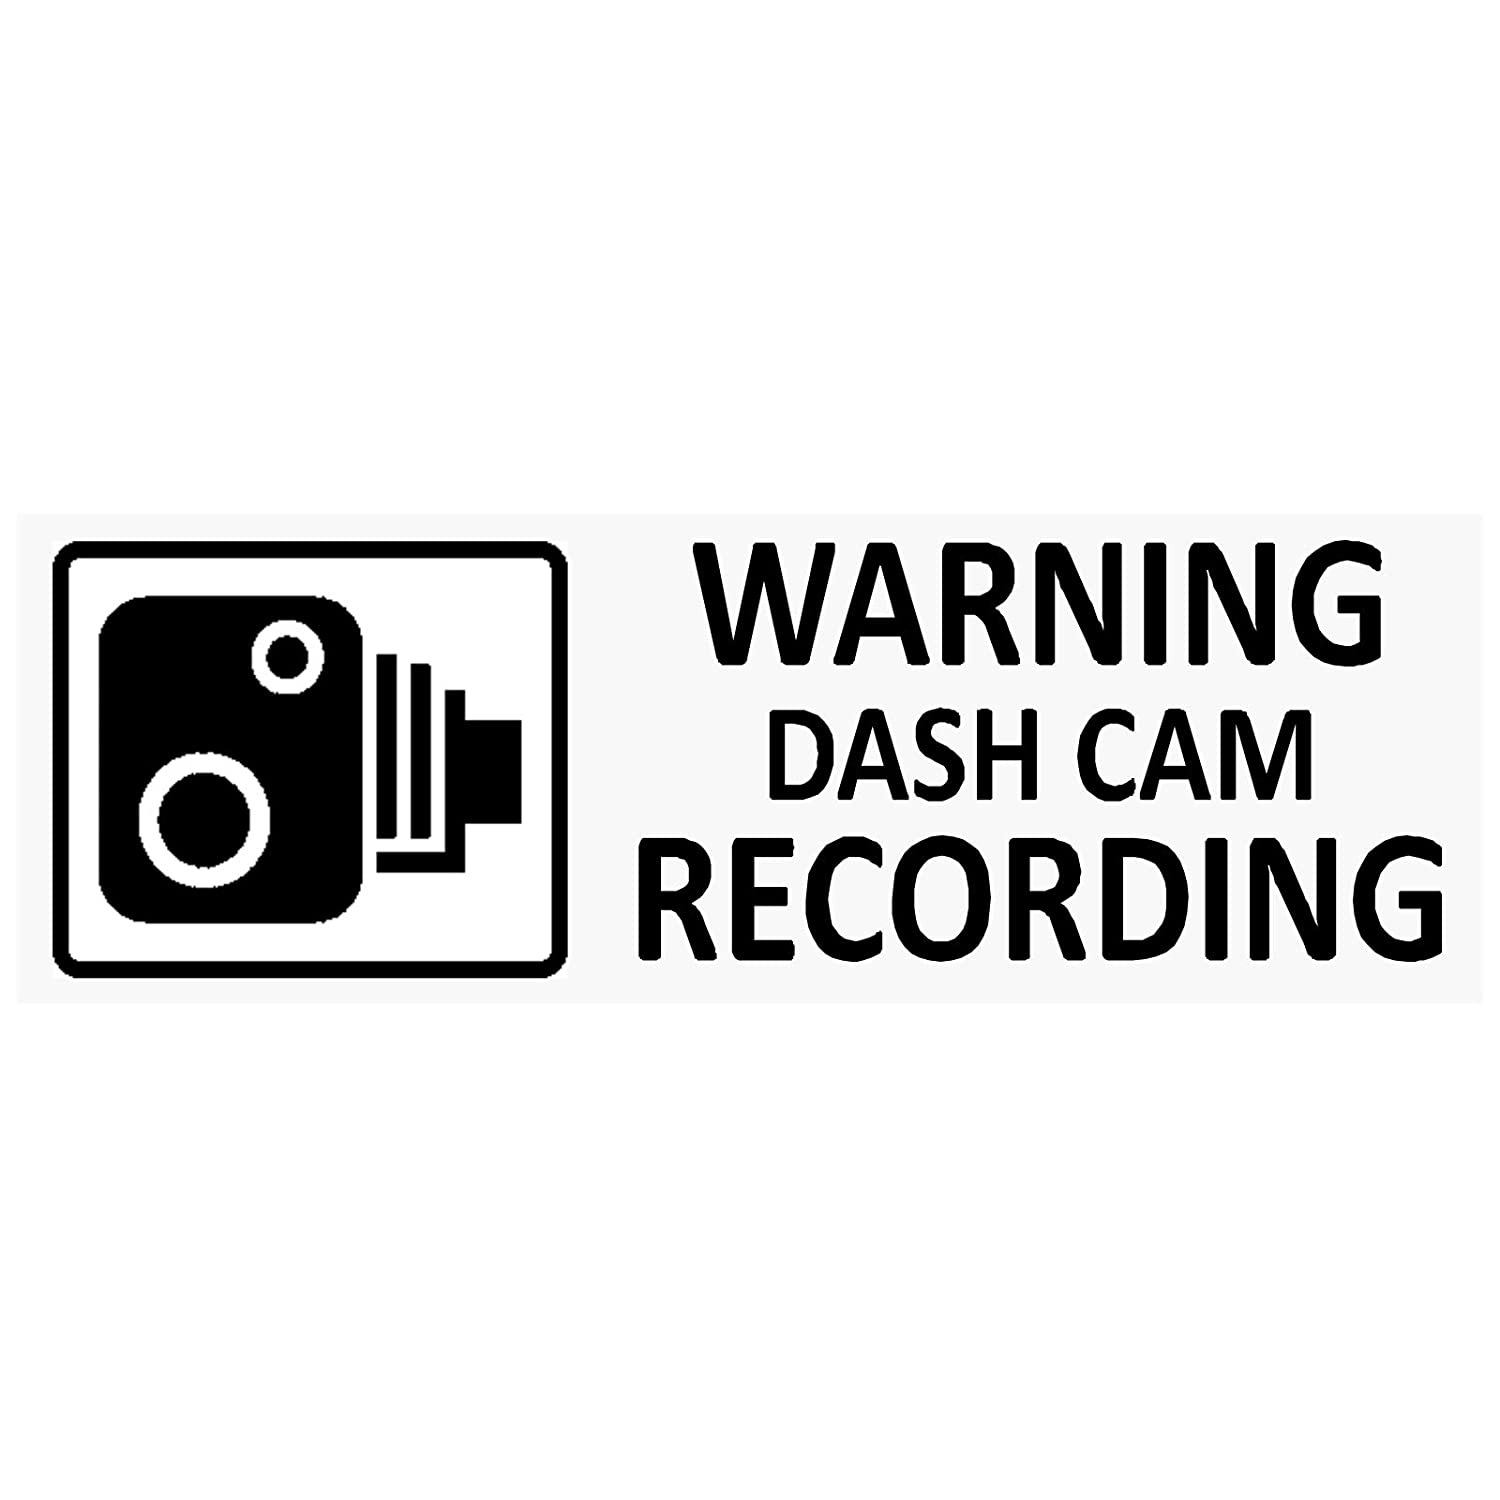 5  x schwarz ACHTUNG Dash Cam recording-30  X 87  MM Fenster stickers-vehicle Kamera Sicherheit Warnung Dash Cam signs-cctv, Auto, Van, Truck, Taxi, Mini, CAB, Bus, Coach Platinum Place